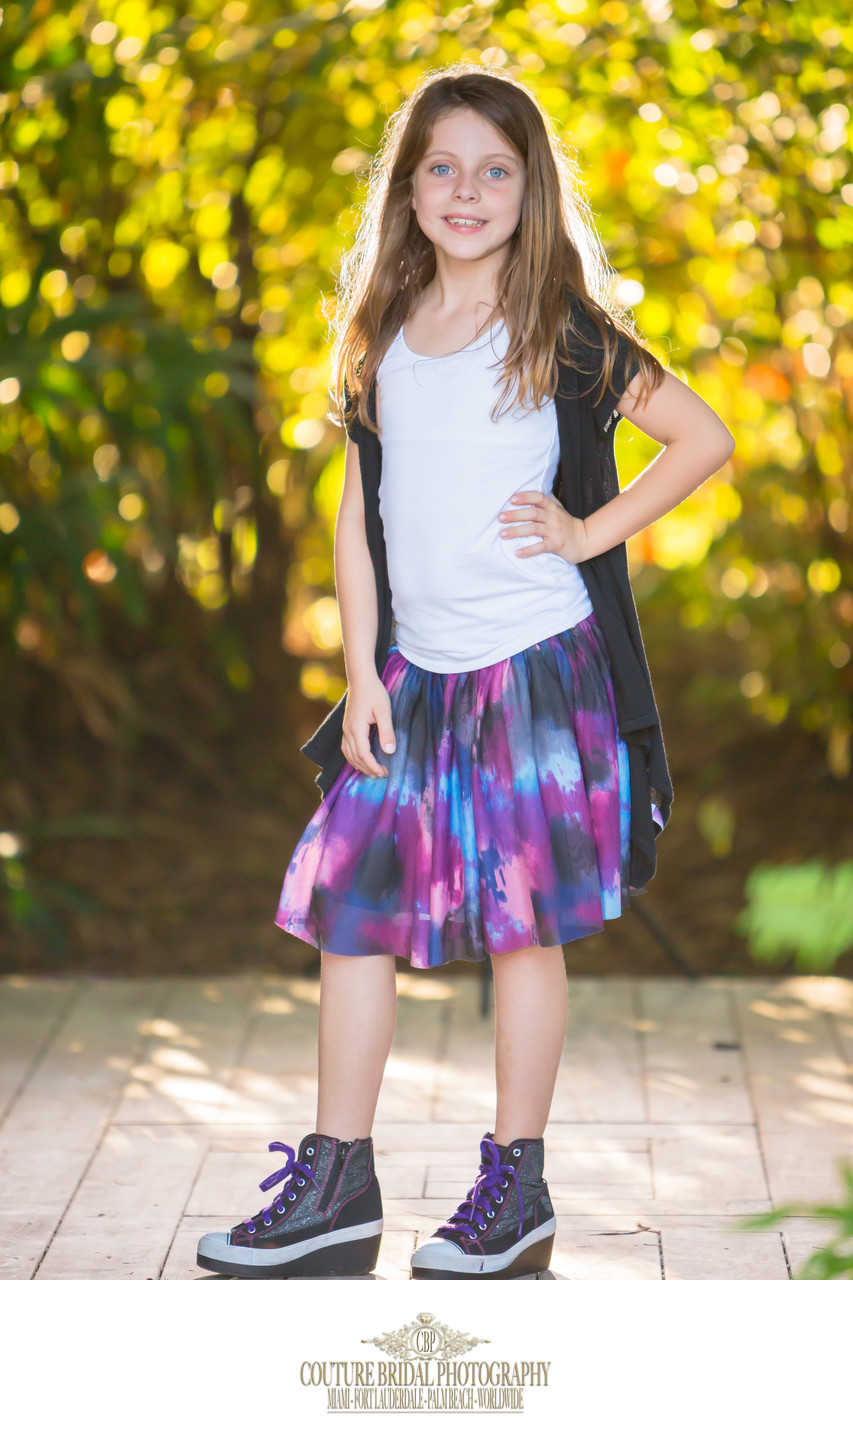 BOCA RATON HEADSHOT & FASHION CHILDREN PHOTOGRAPHER